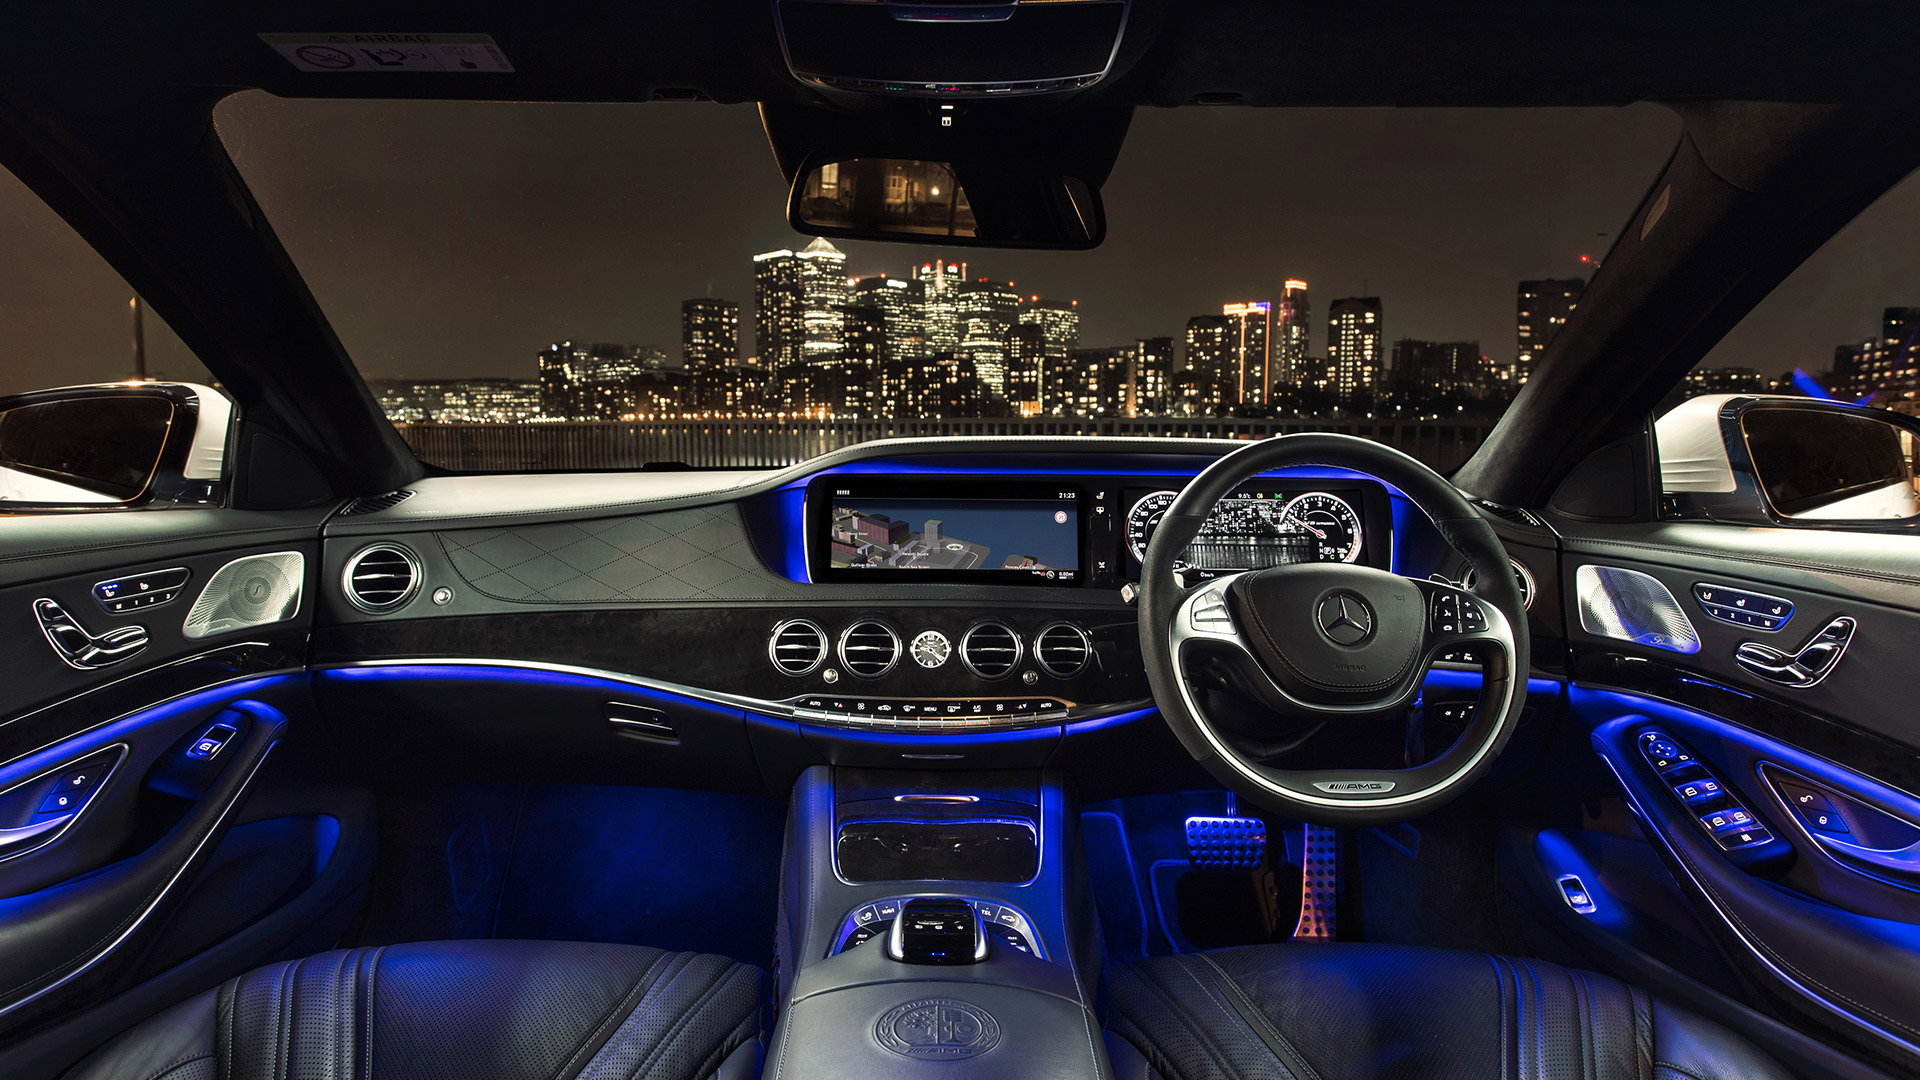 Mercedes benz S63 AMG coupe 2018 Dashboard